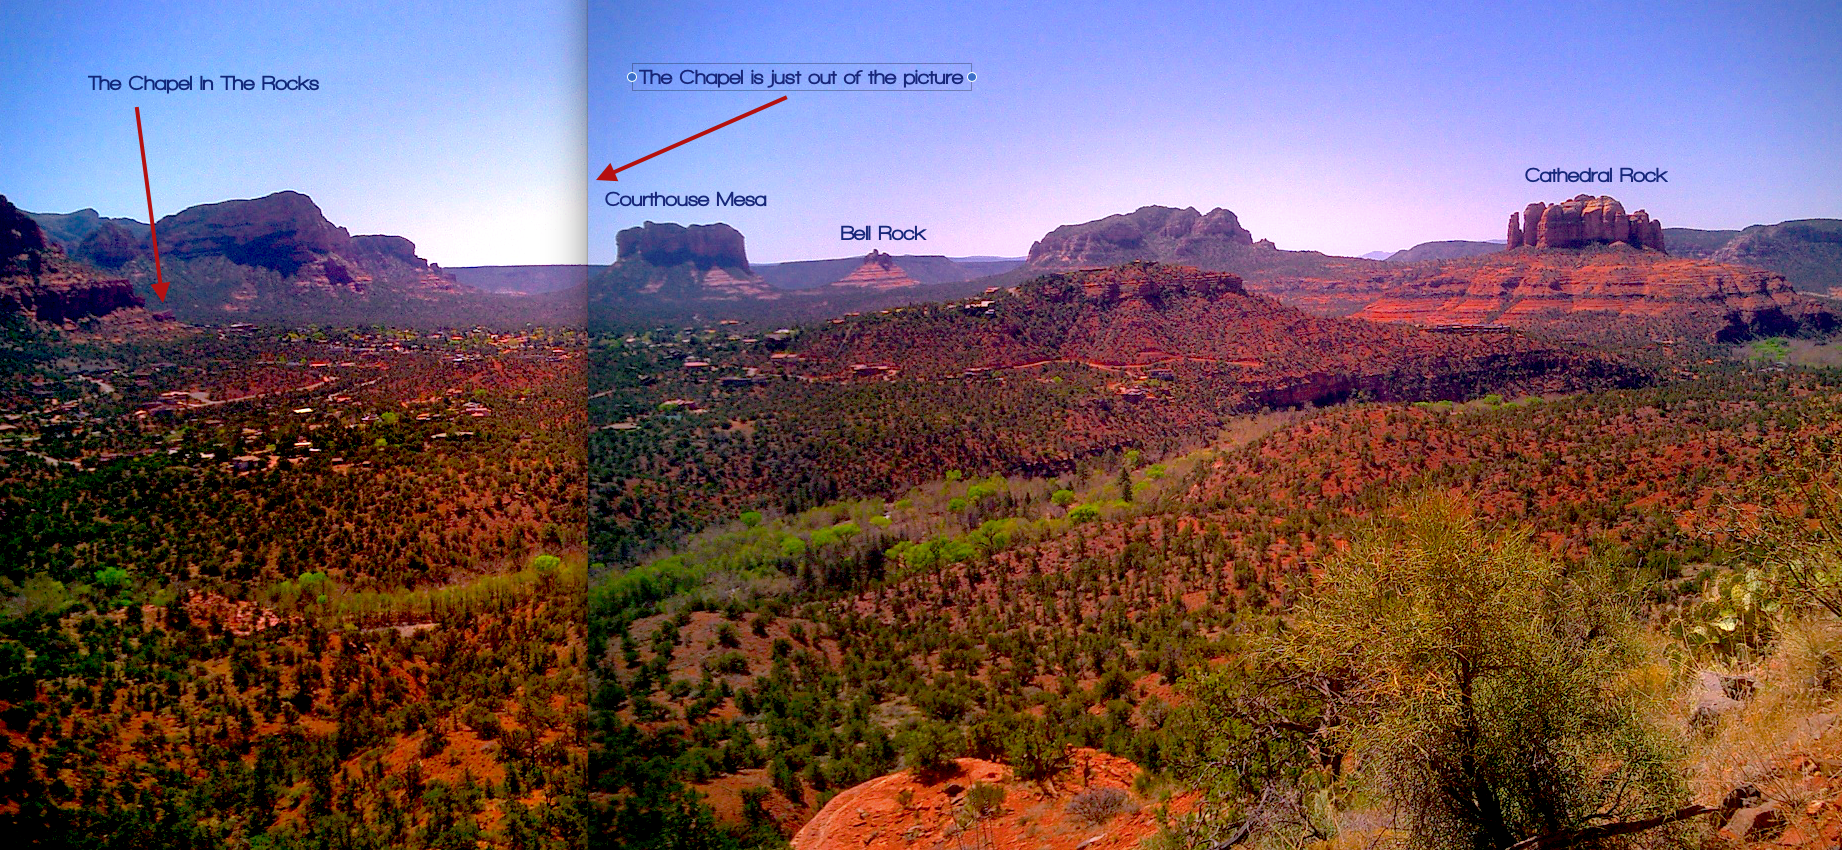 stitched panorama of famous red rock sedona formations